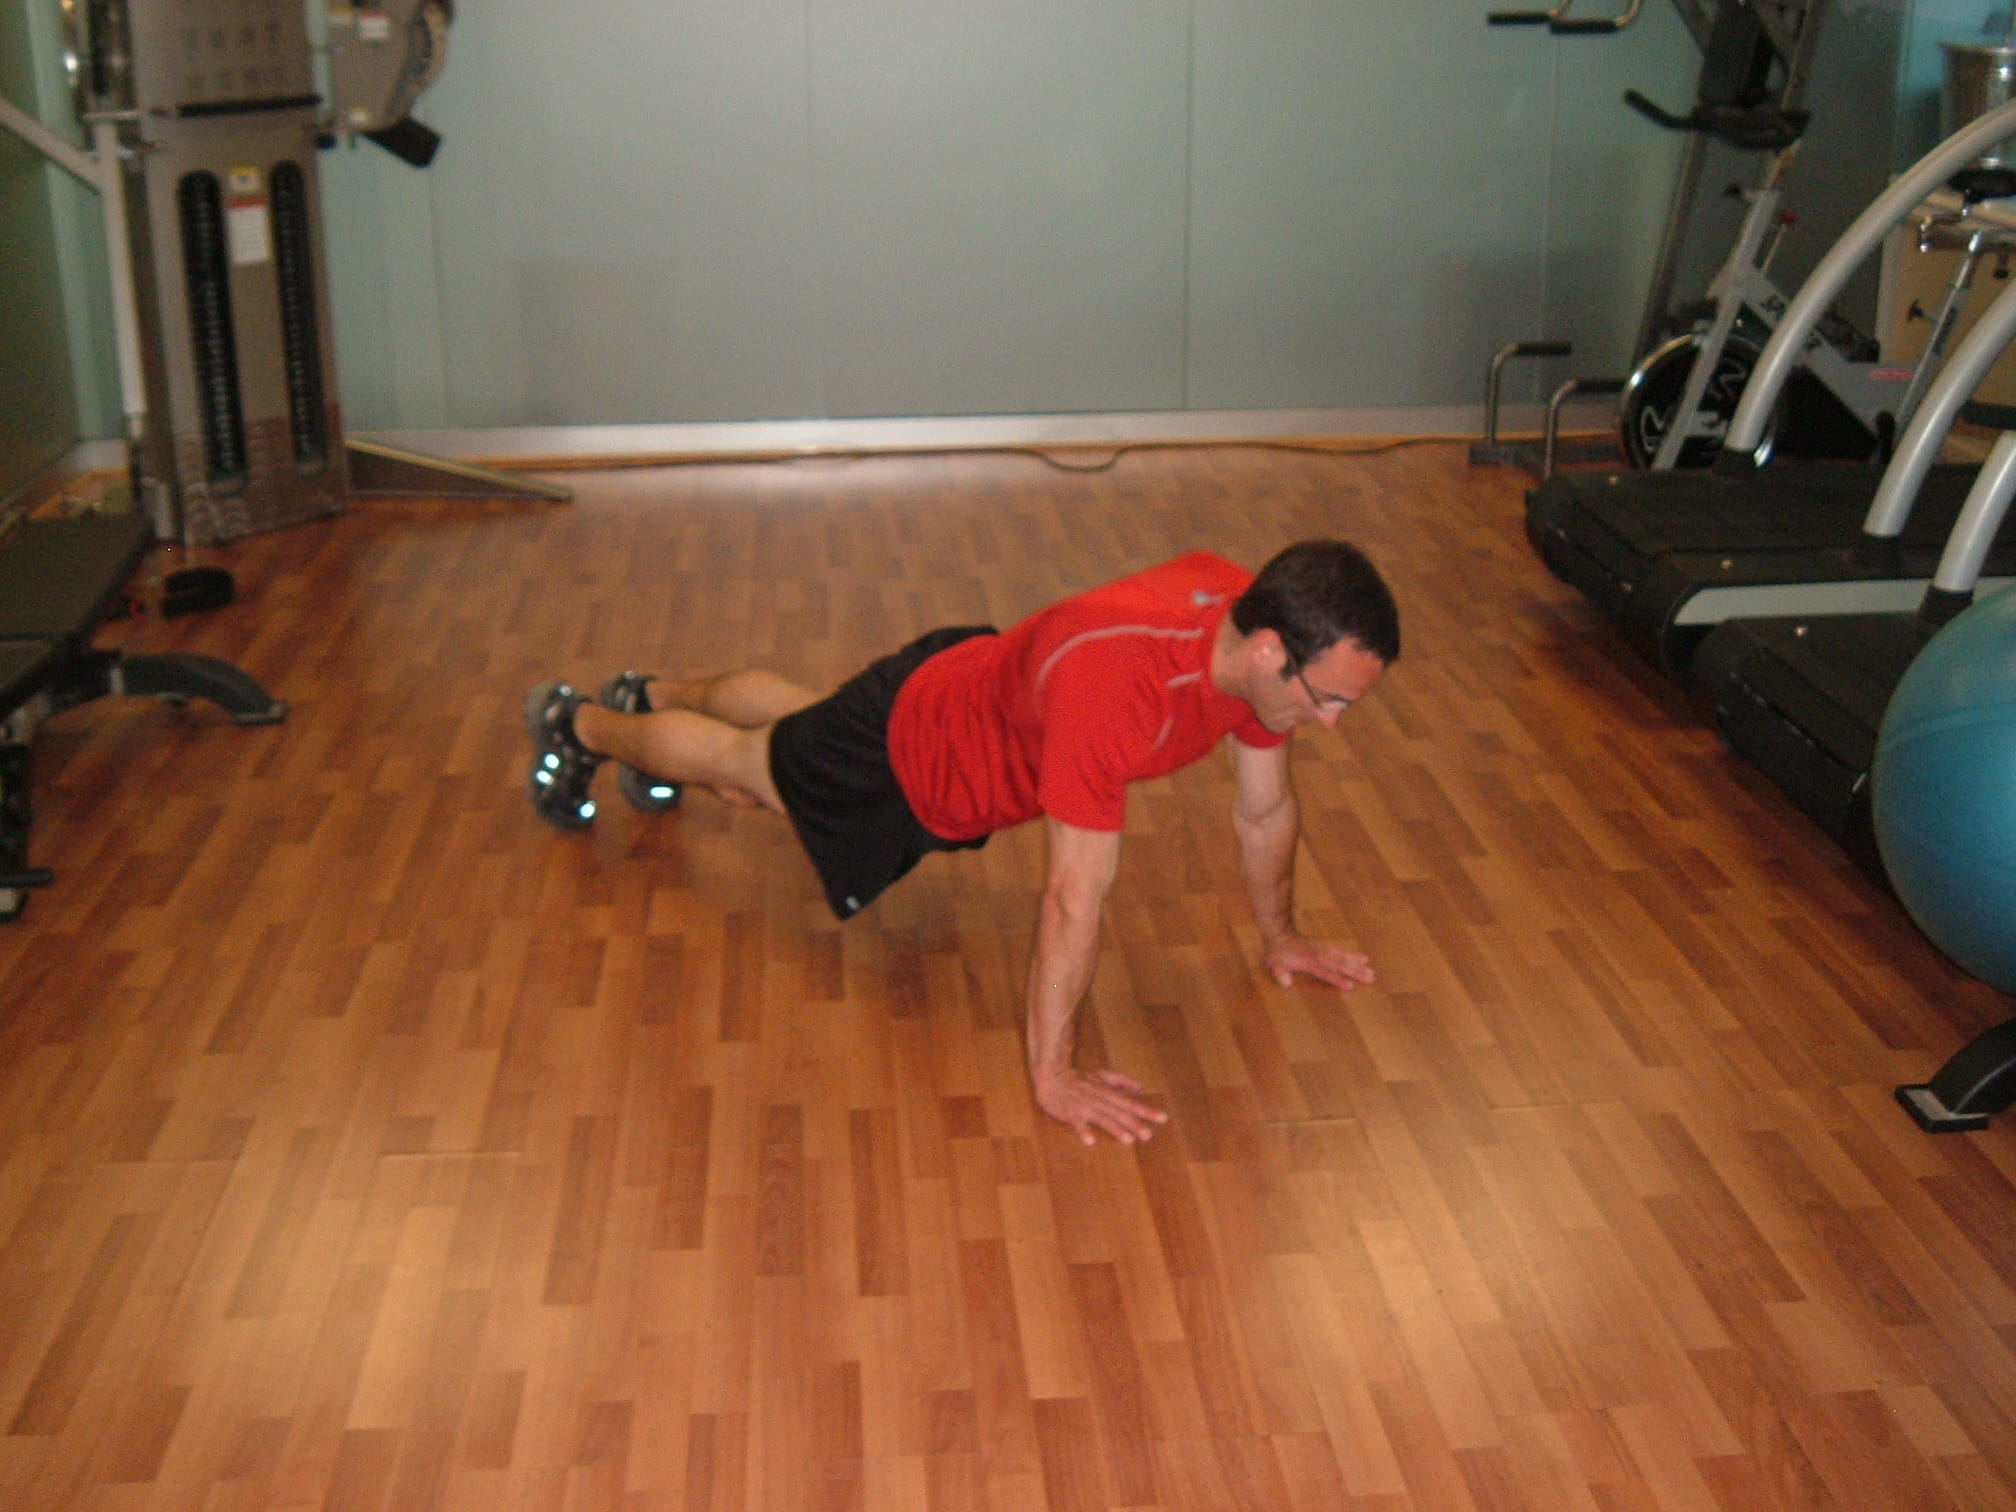 spiderman pushups - good core exercise